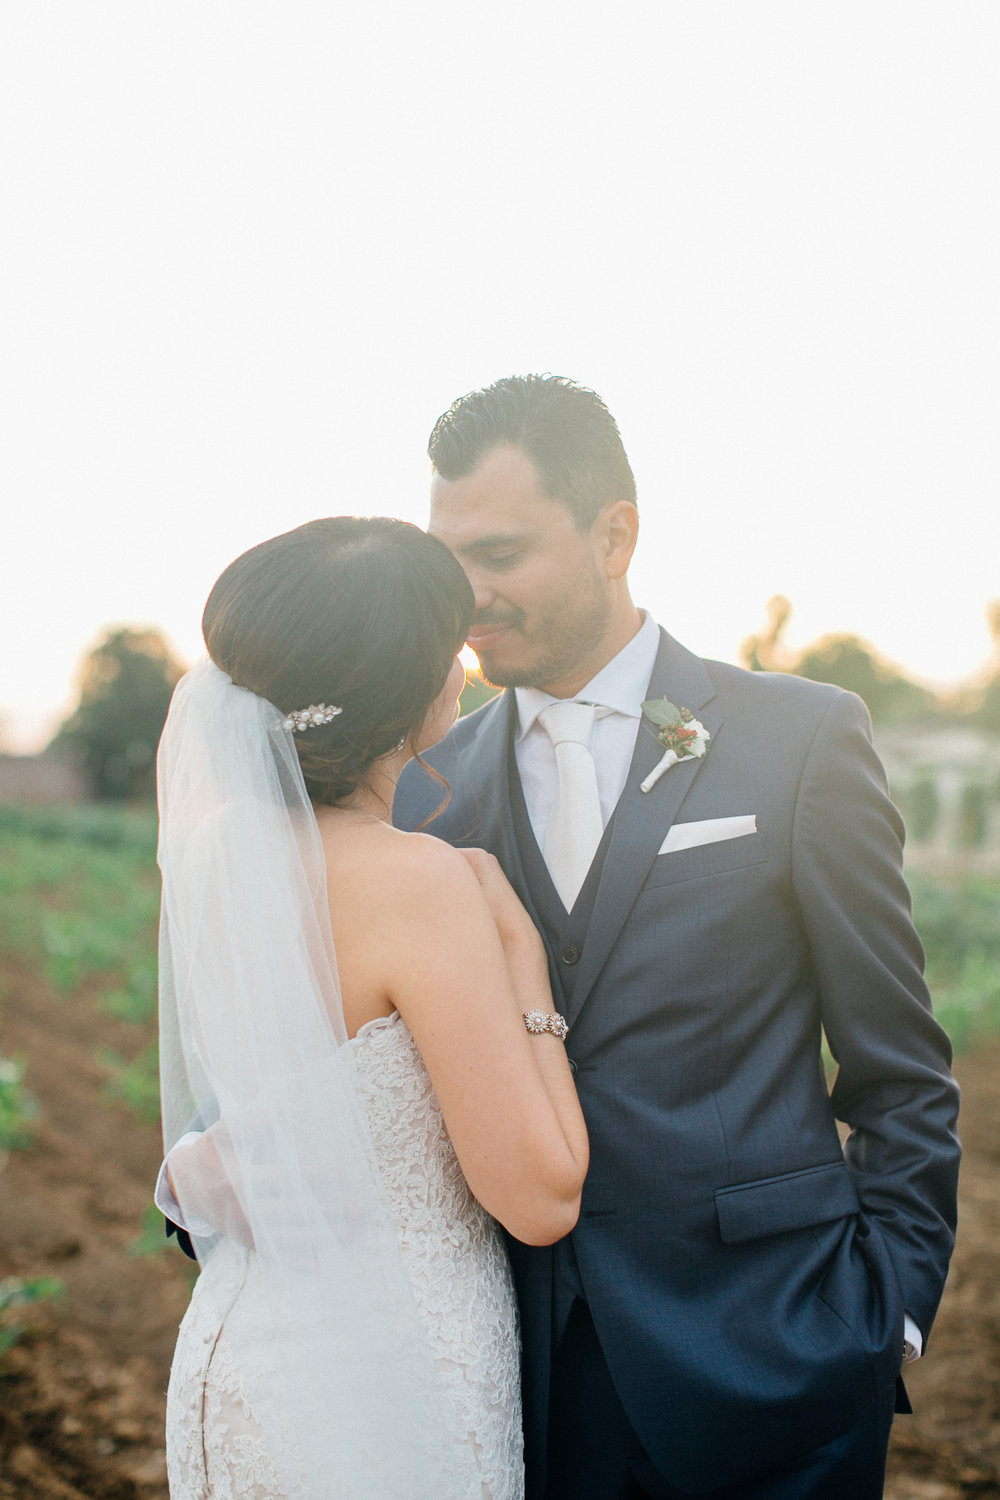 de2bf-elegant-country-charm-ranch-wedding-bride-and-groom-share-a-moment-before-the-reception.jpg